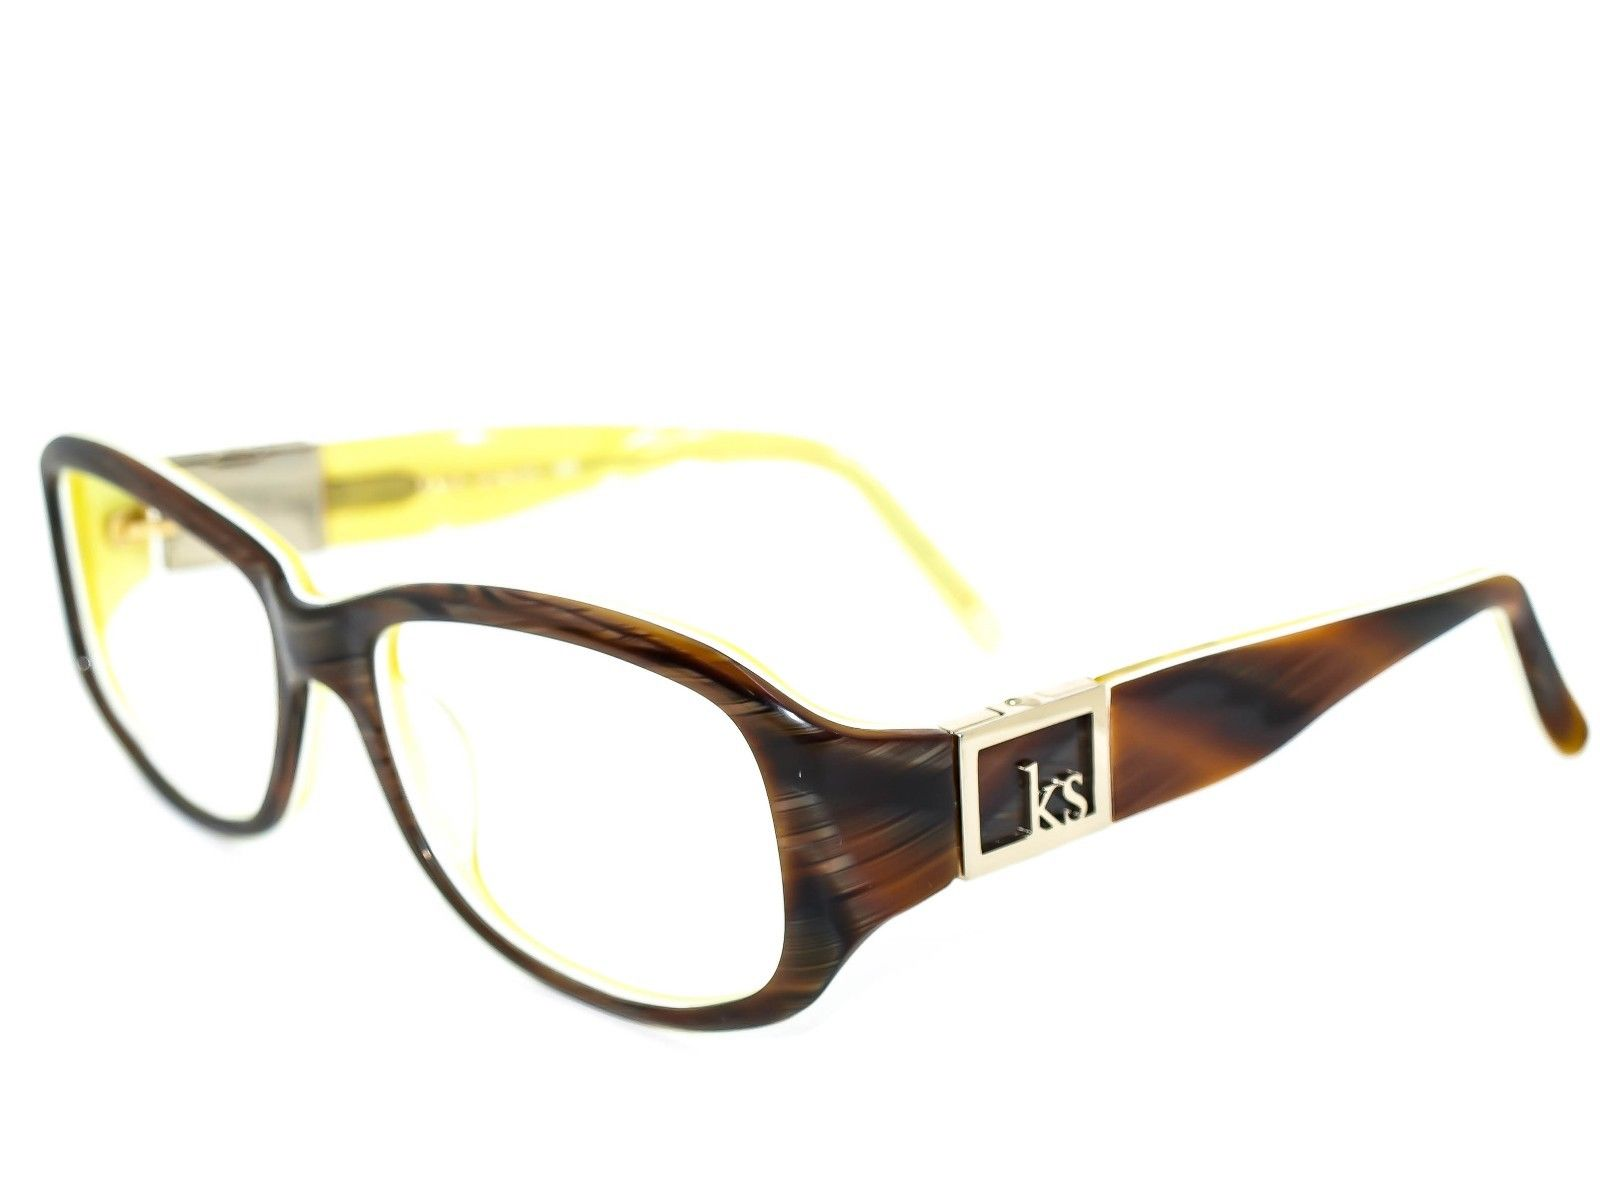 Kate Spade Marli/S DHZ Sunglasses Frame Only